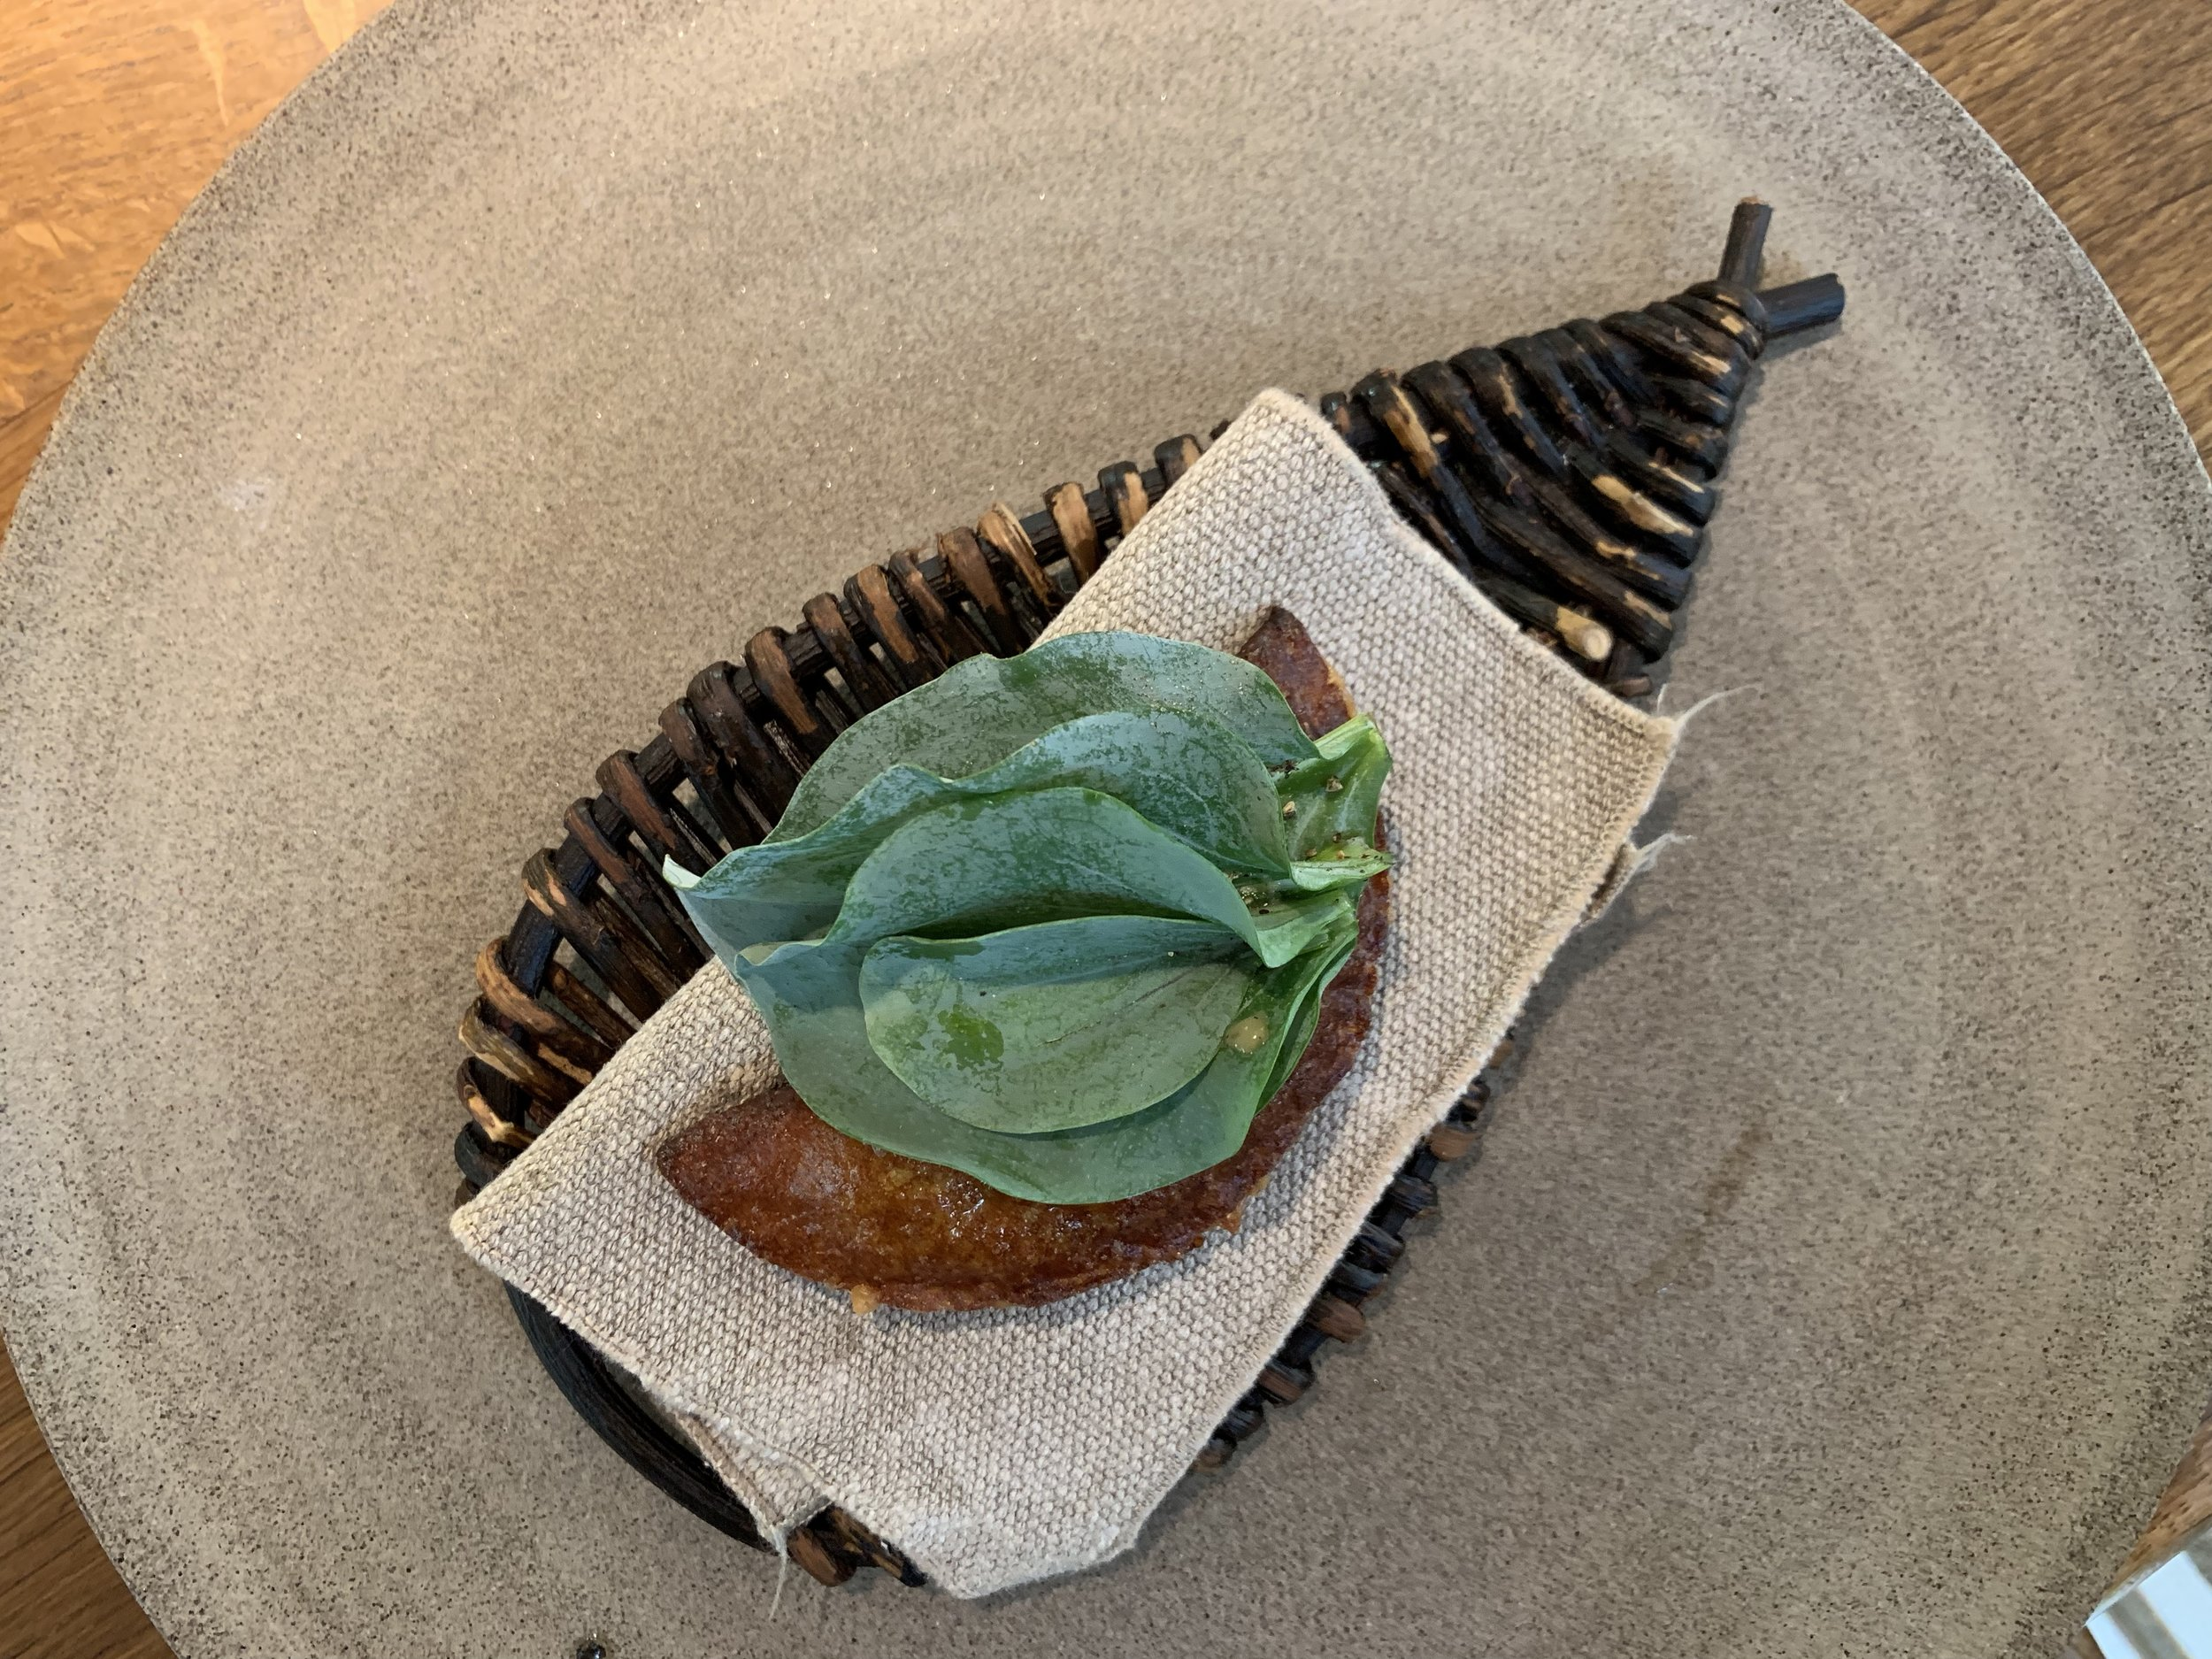 Salt Cod Pie - Here they made a cod pie out of milk skin, very similar to the caramelized milk and cheese dish we had during the Vegetable Season. This is served with oyster leaves on top. Why are they called oyster leaves? Because they actually have the flavor of oysters! So cool.